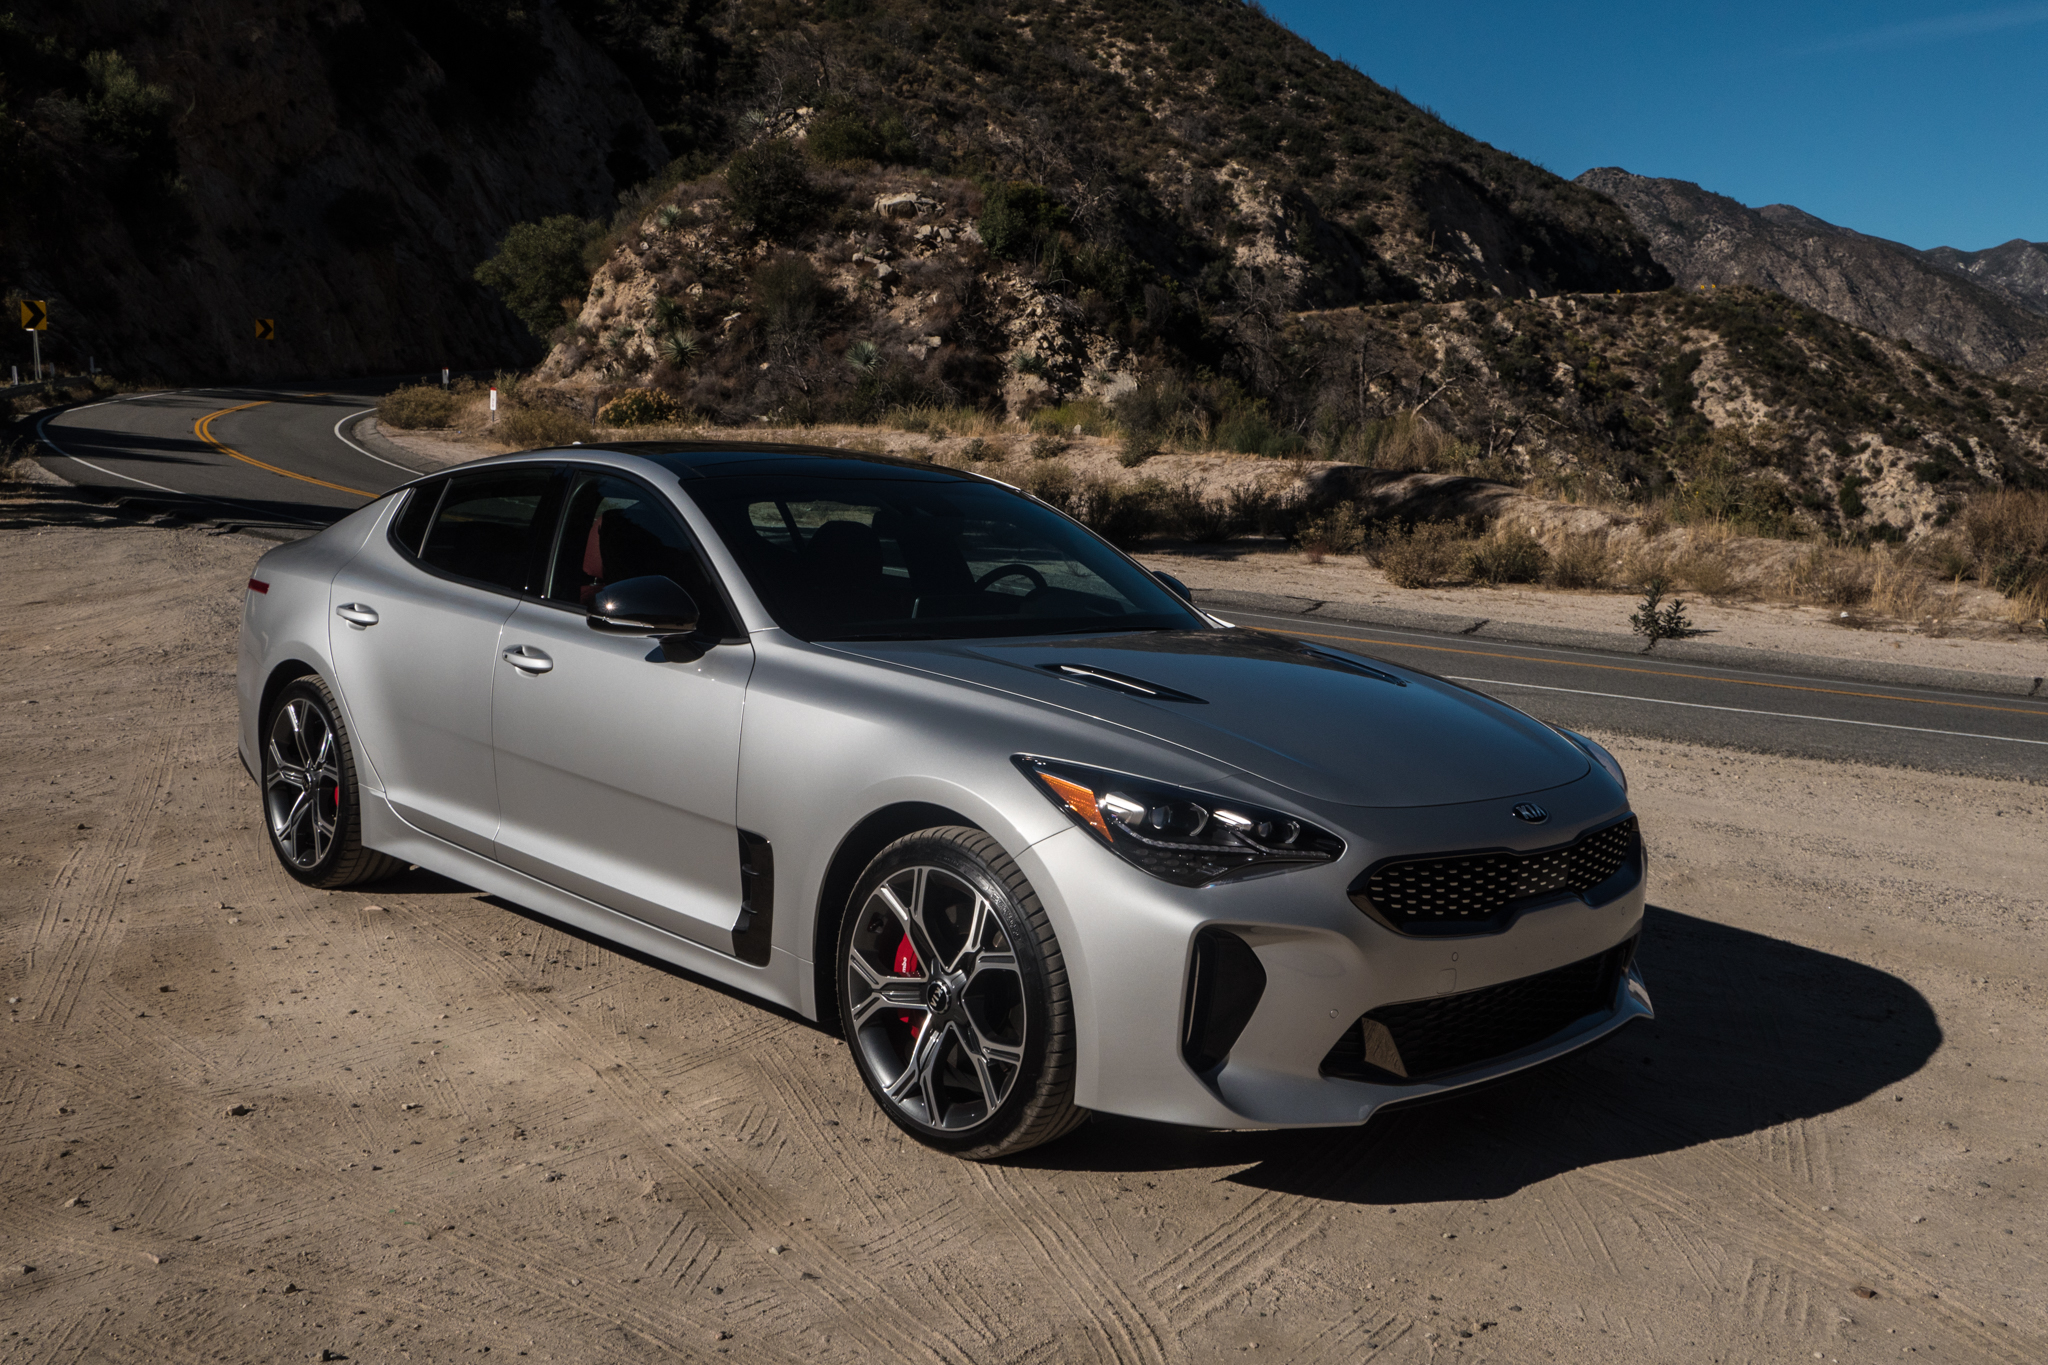 The Internet S Favorite Car Of 2018 Is The Kia Stinger Gt